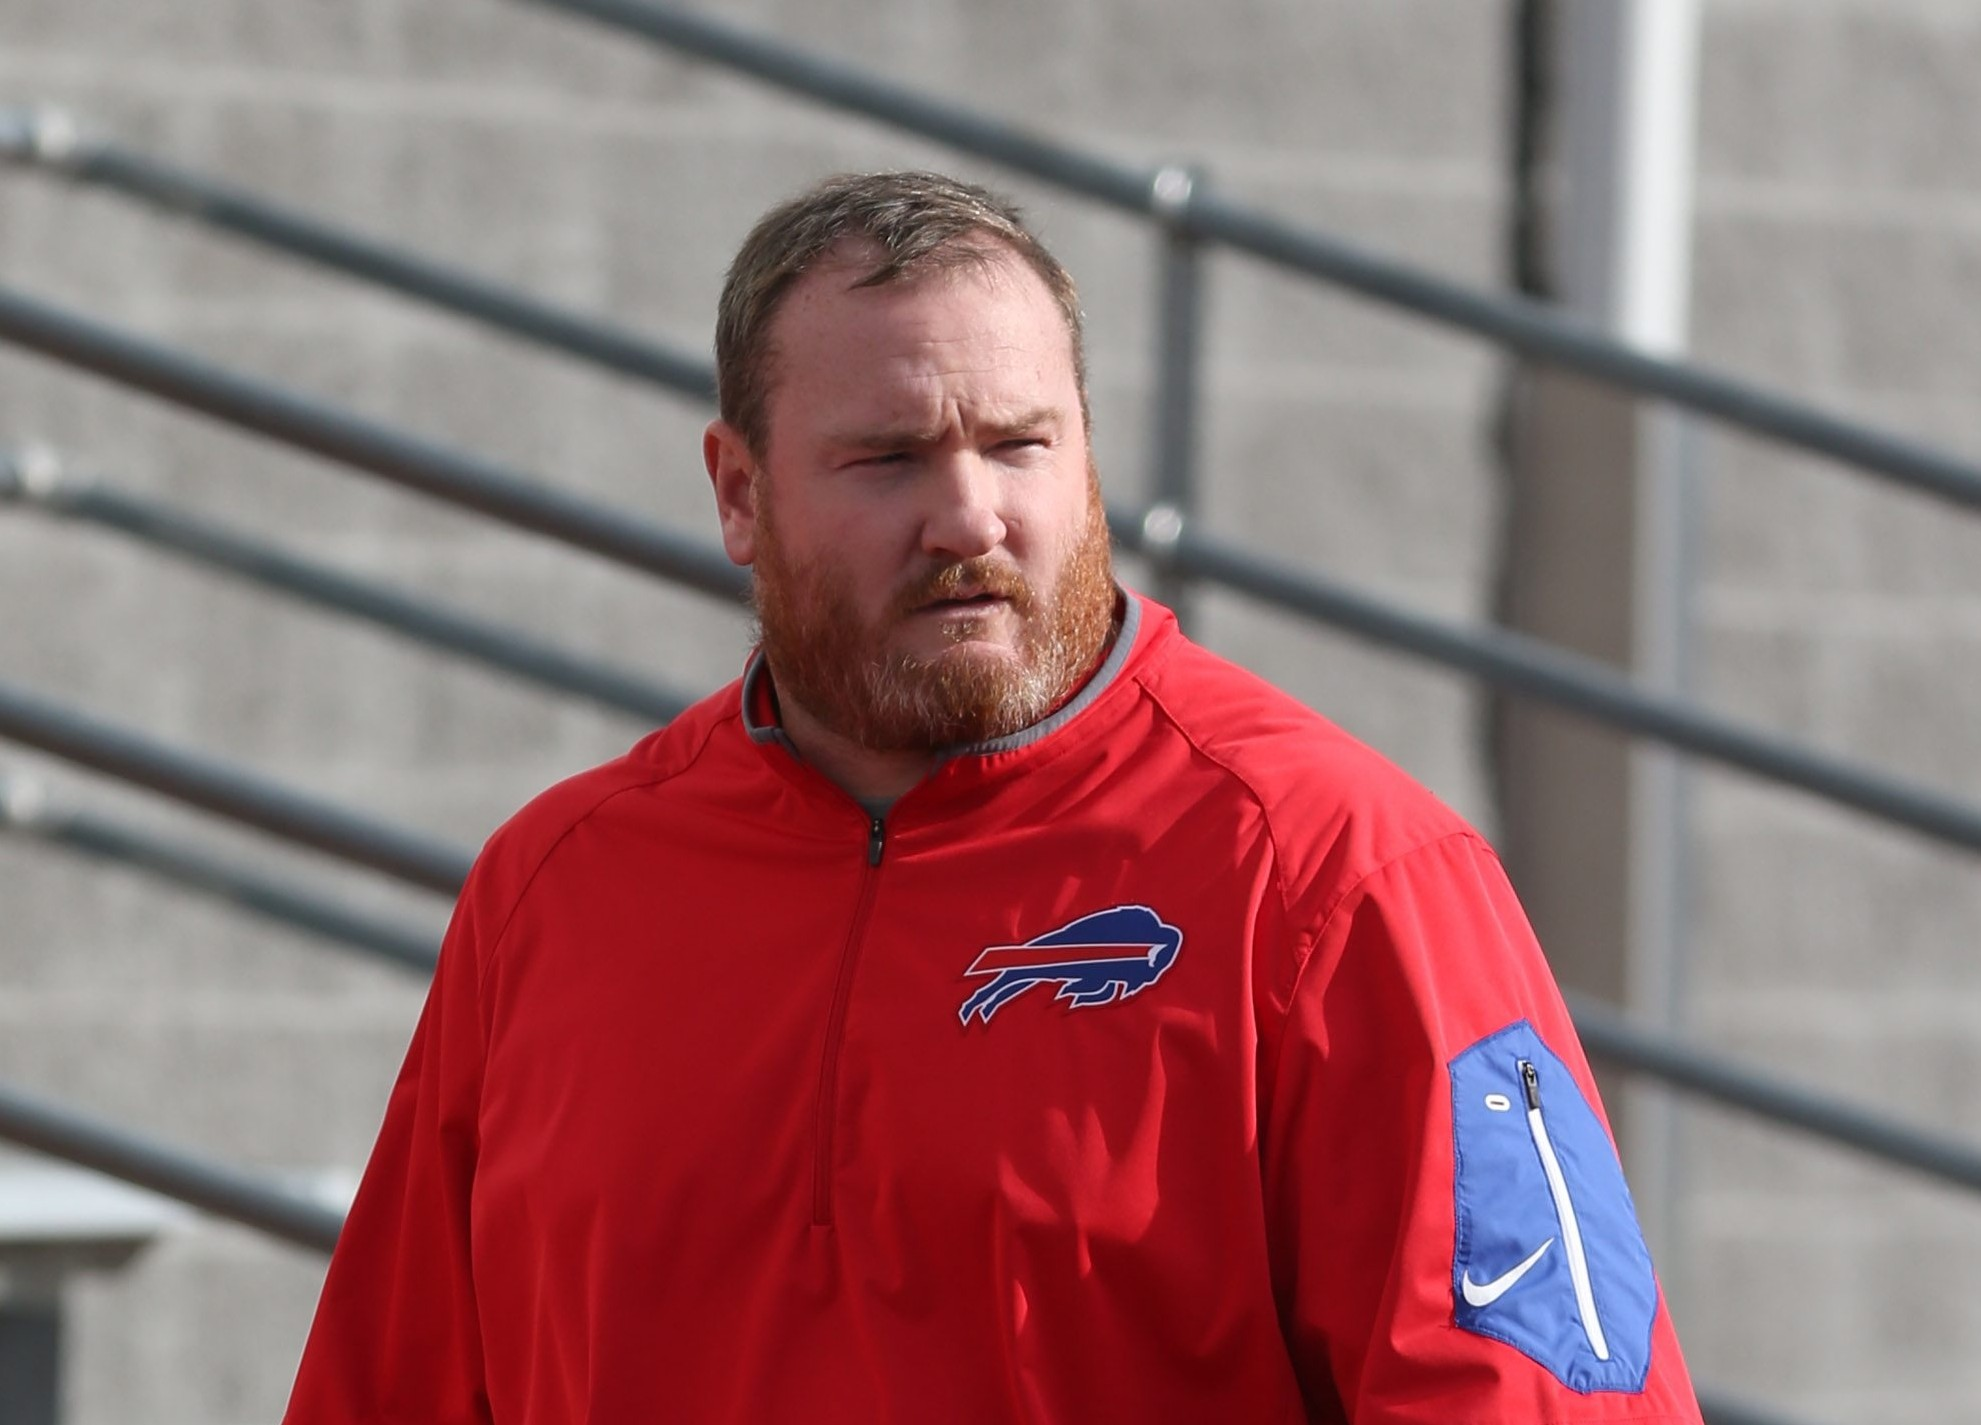 Kyle Williams said he's been in contact with new Bills coach Sean McDermott, and likes what he's heard. (James P. McCoy/Buffalo News)